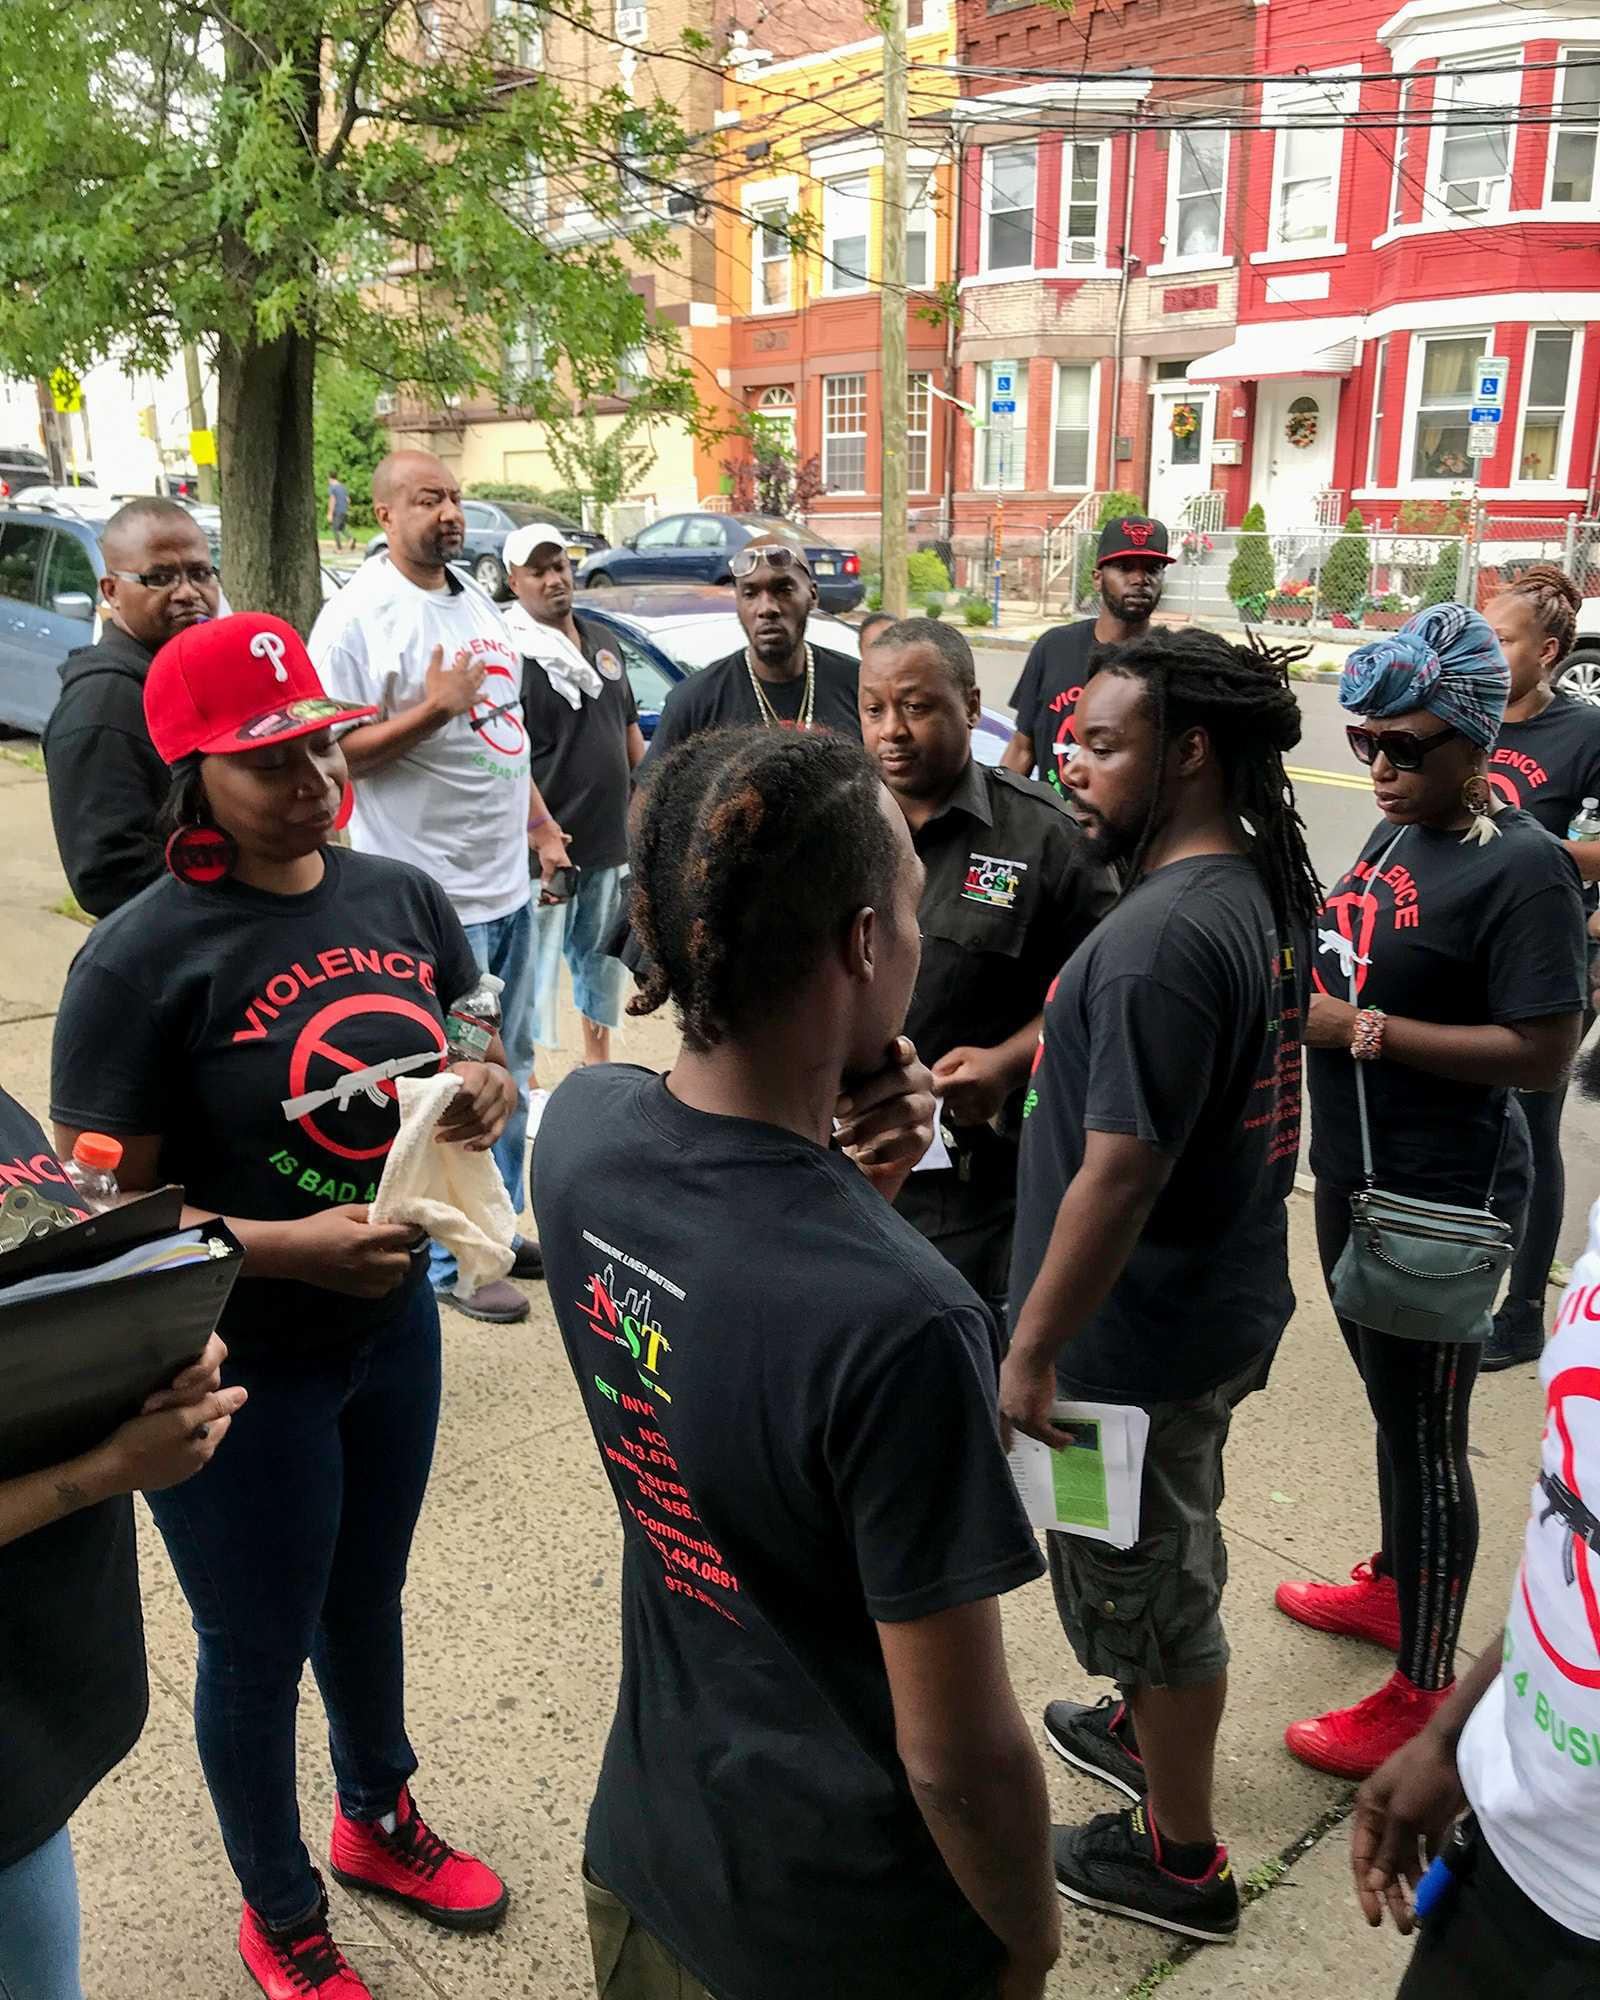 """The Newark Community Street Team was created in 2015 after a three-year federal investigation found that Newark's police had a history of unconstitutional conduct that """"eroded public confidence in the police."""" (Photo courtesy of Aqeela Sherrills)"""